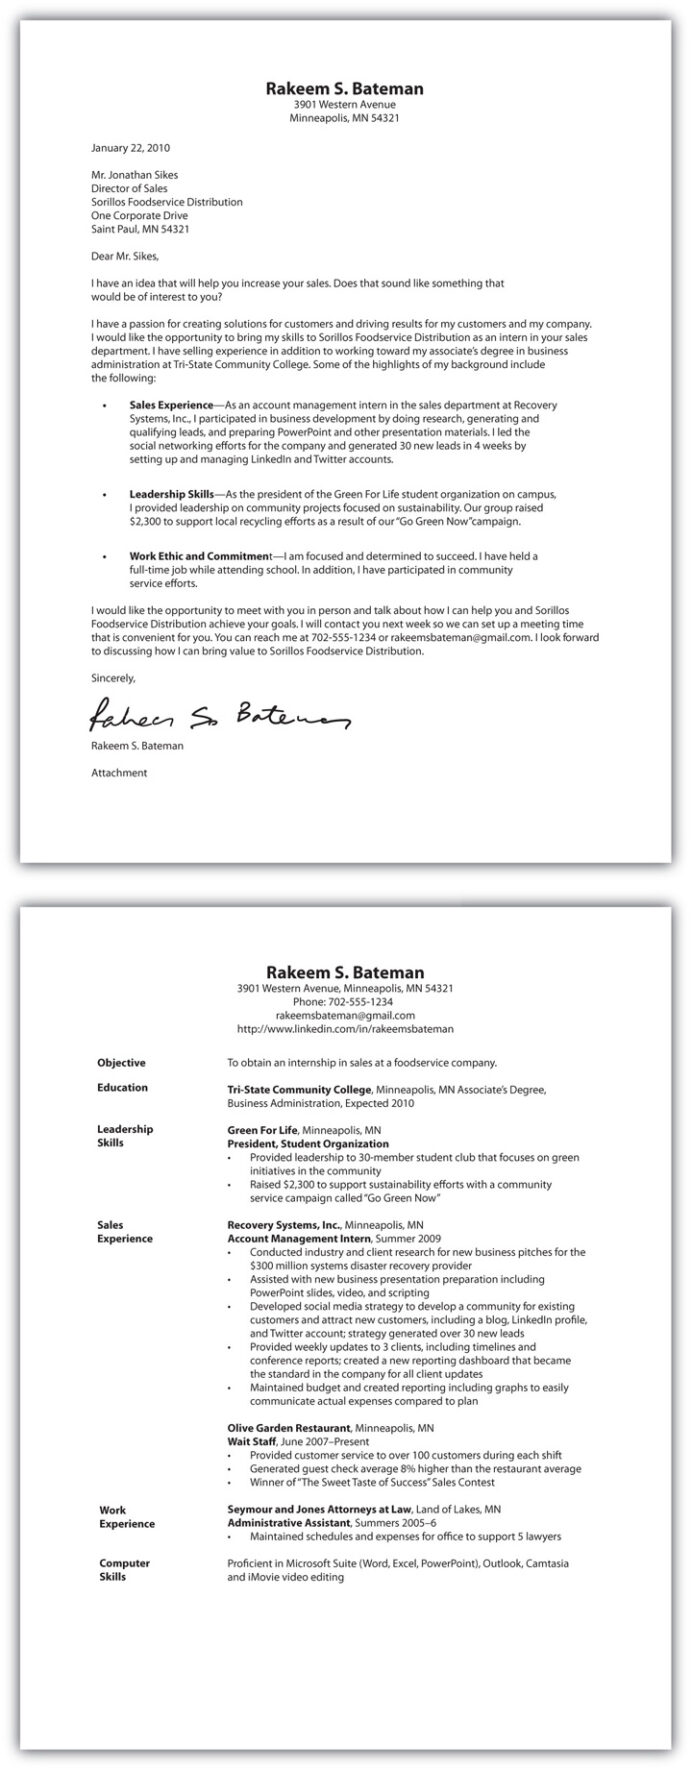 selling résumé and cover letter essentials creating for resume pretty templates example Resume Creating A Cover Letter For Resume